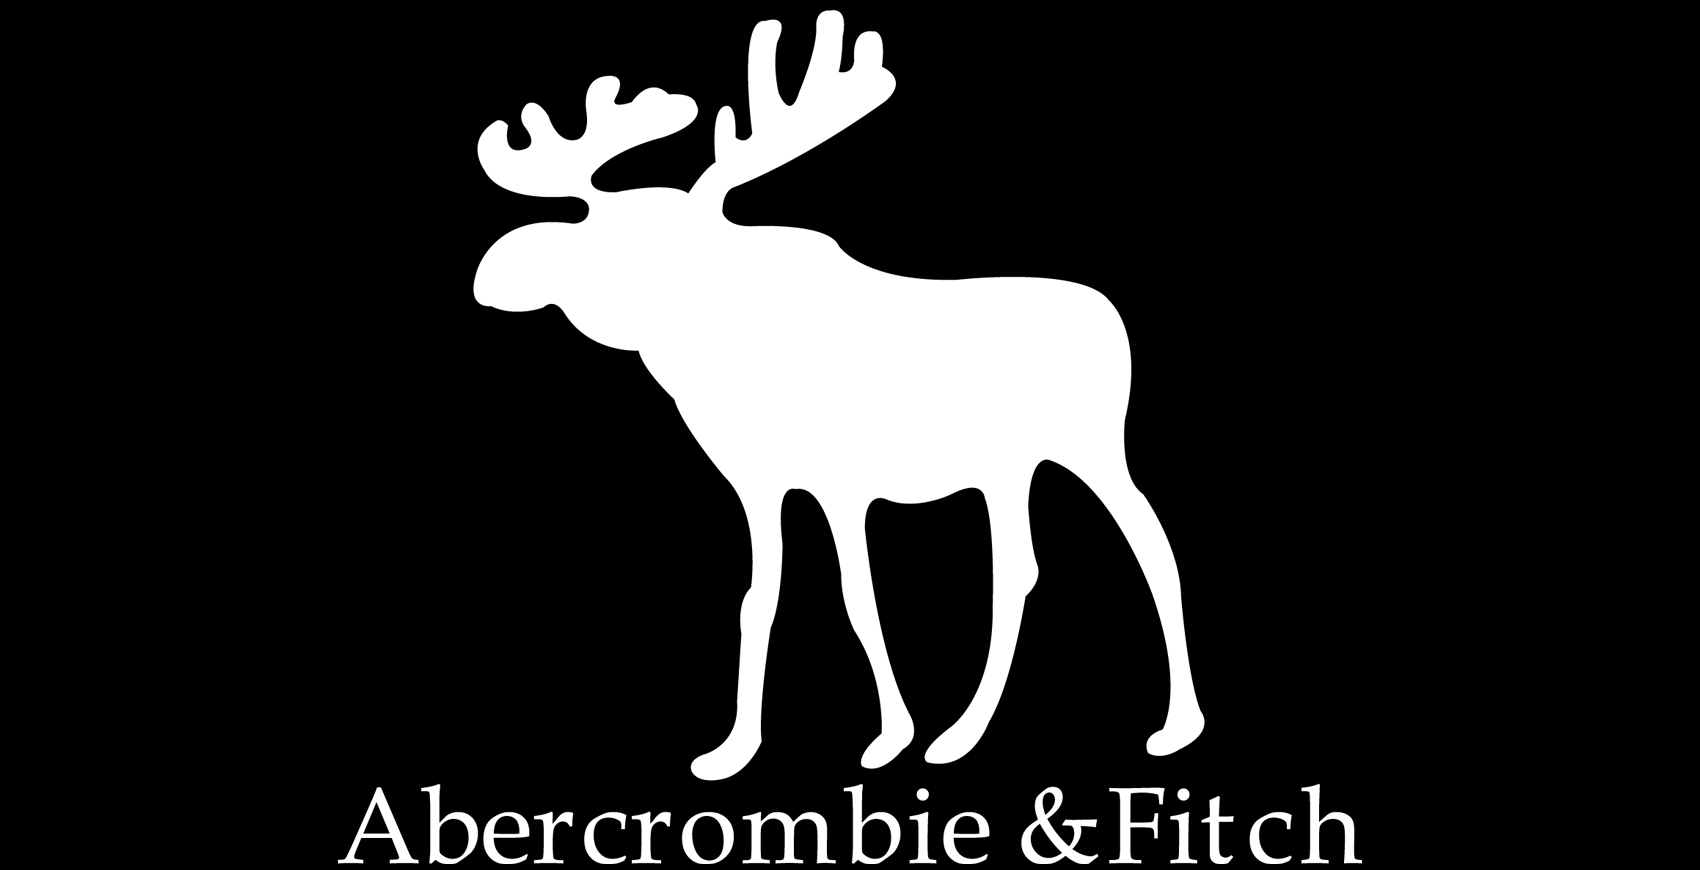 Meaning Abercrombie & Fitch logo and symbol.